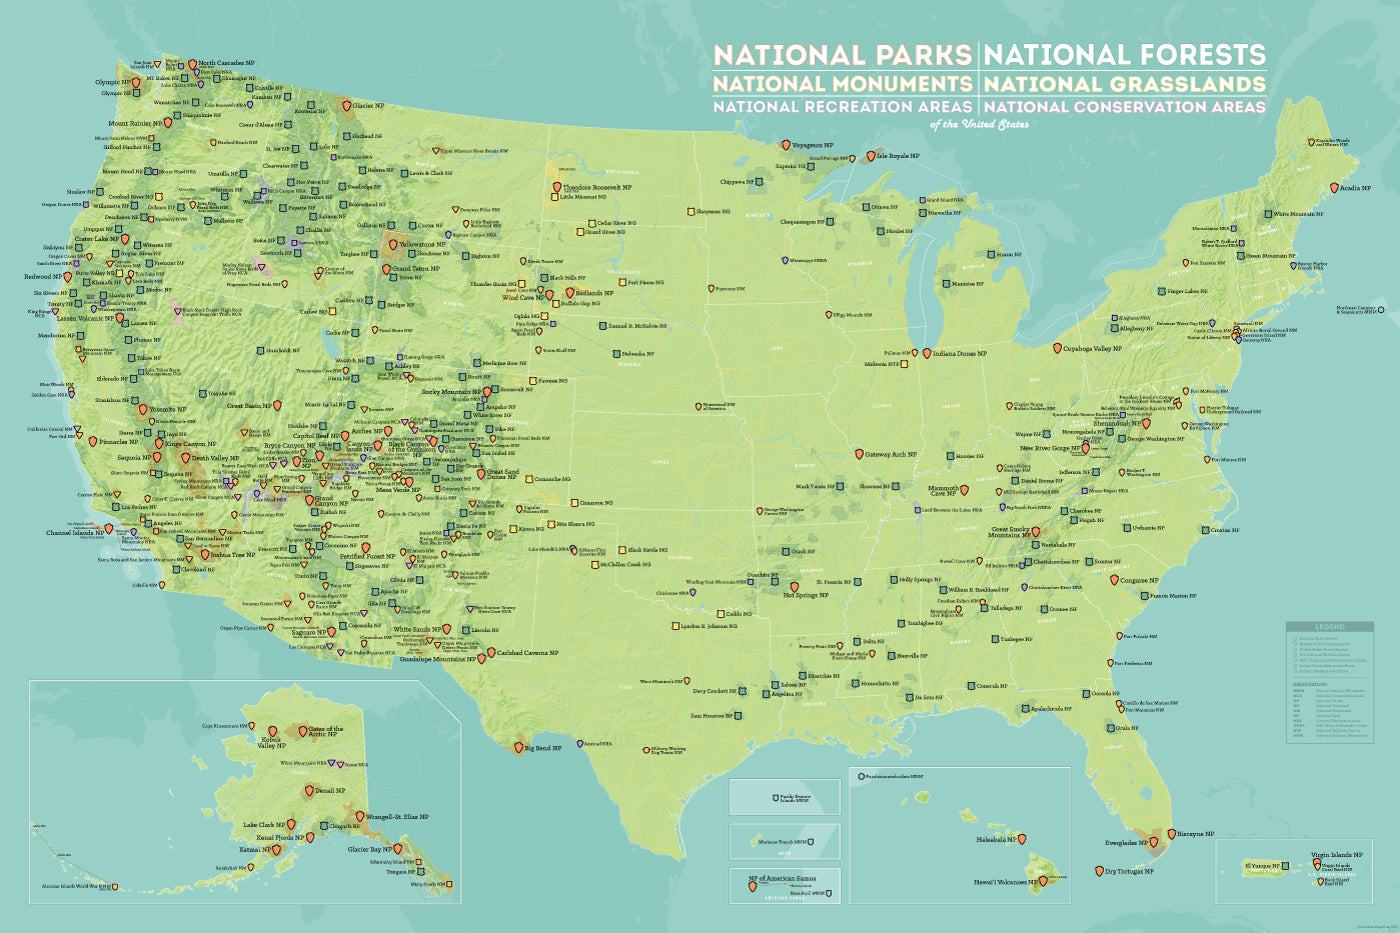 US National Parks Monuments Forests Map X Poster Best - Us national forests on a map